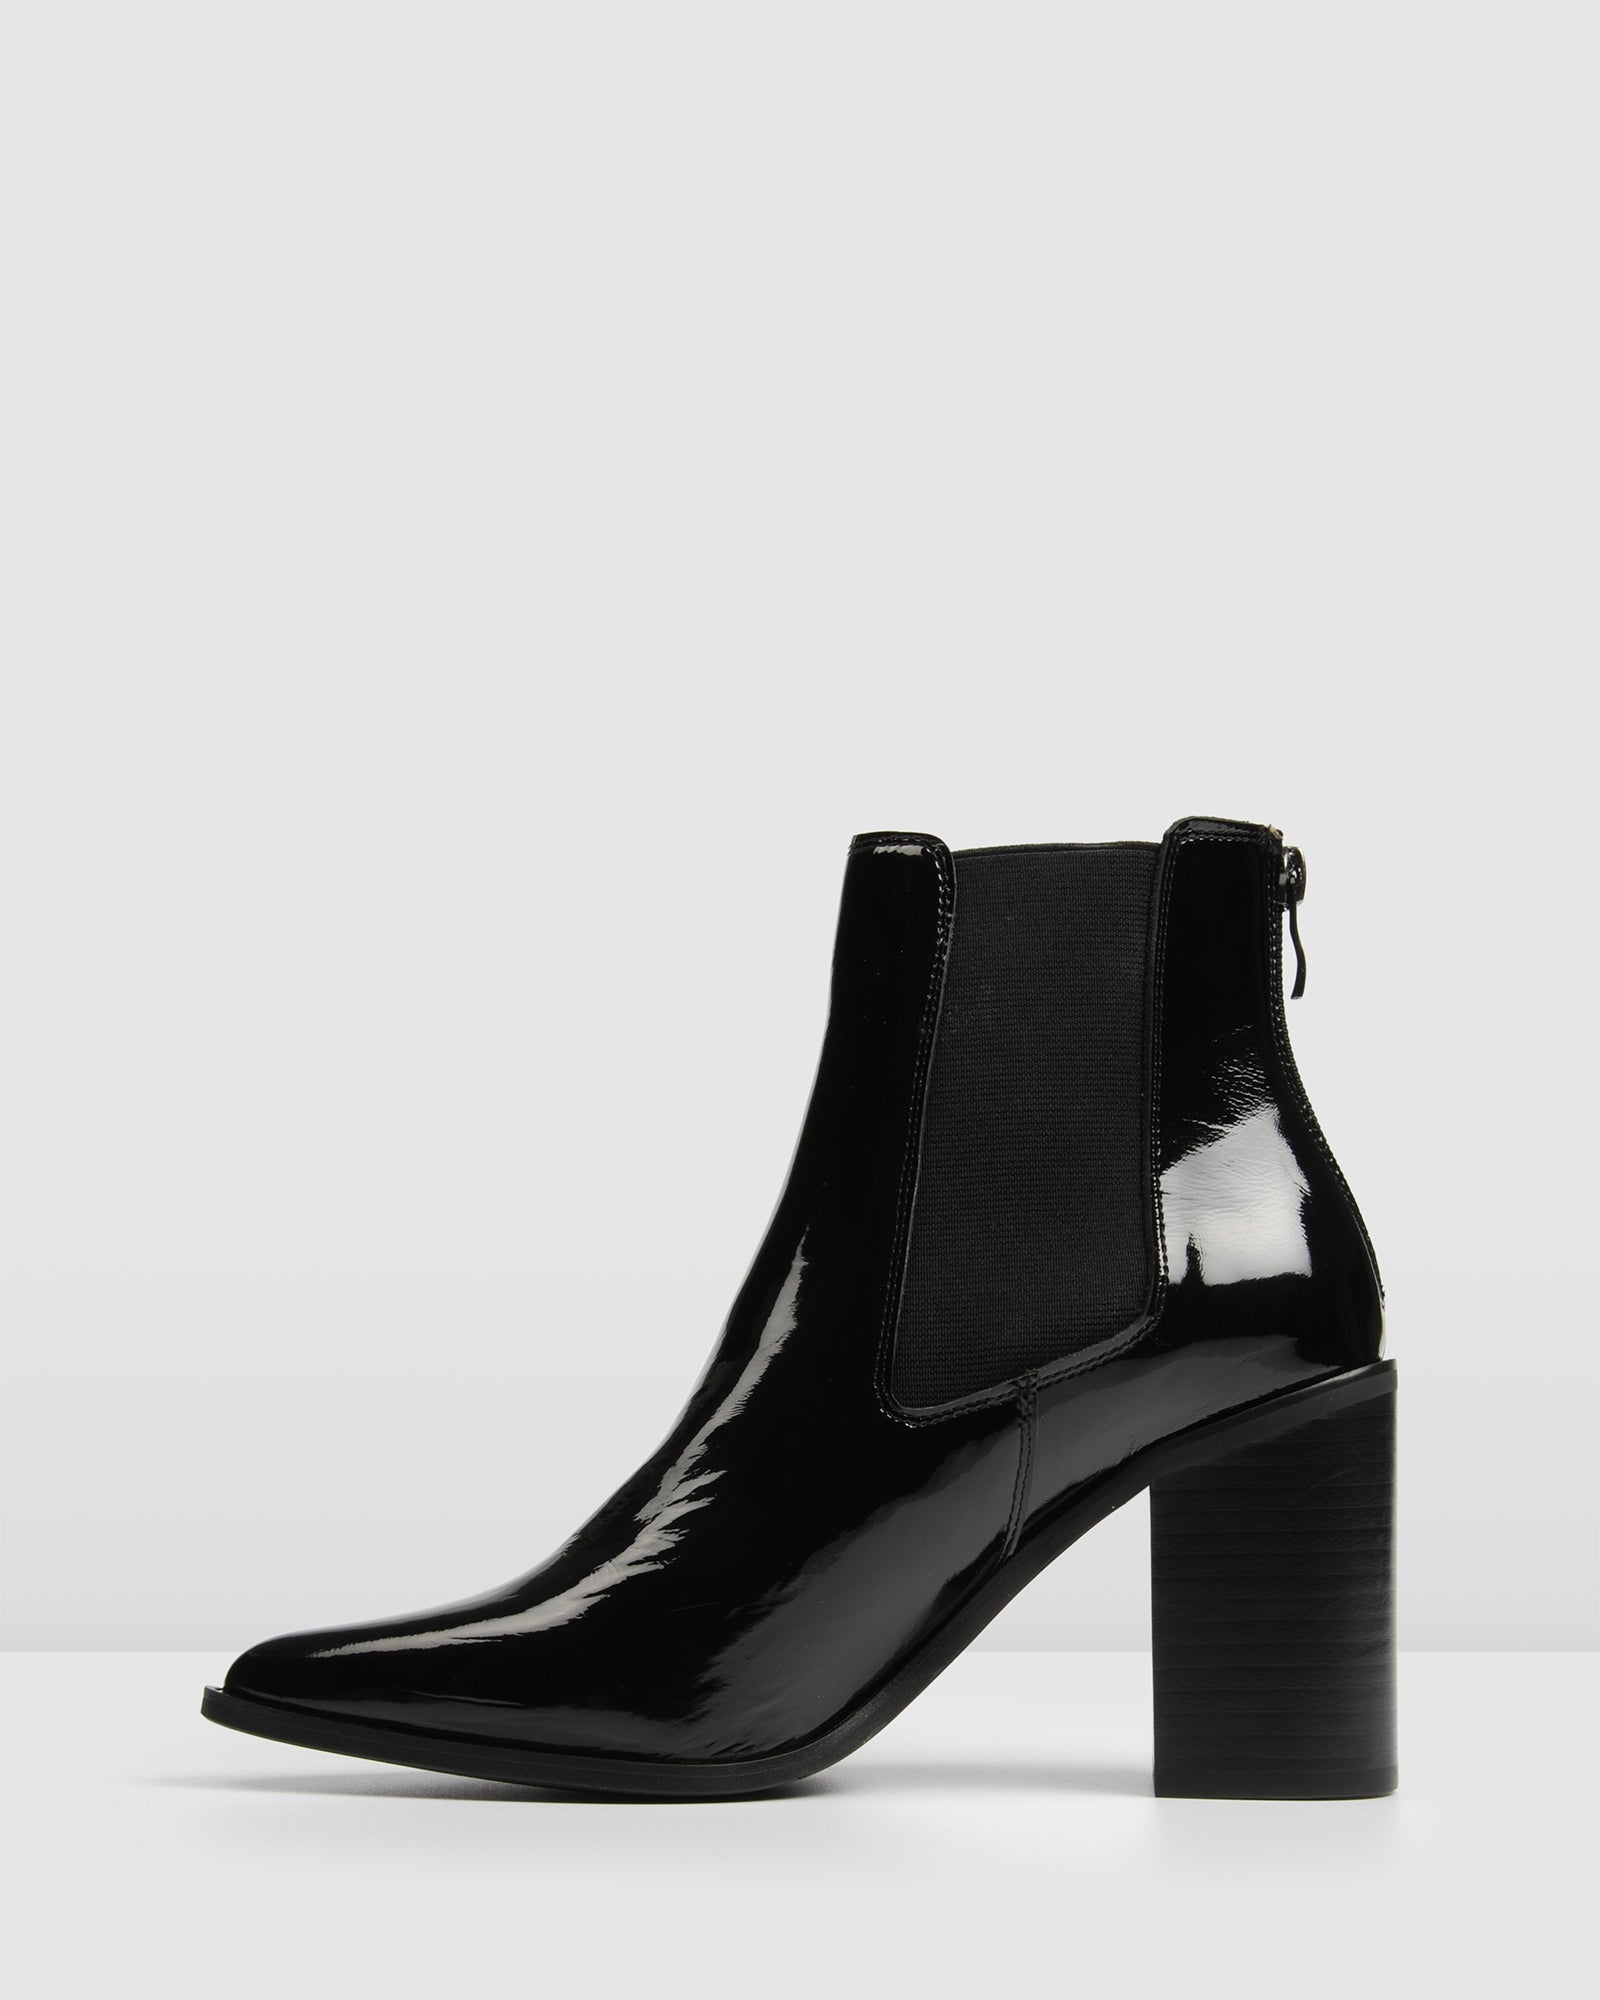 a7b14a9fb17f Jo Mercer | Women's Shoes online